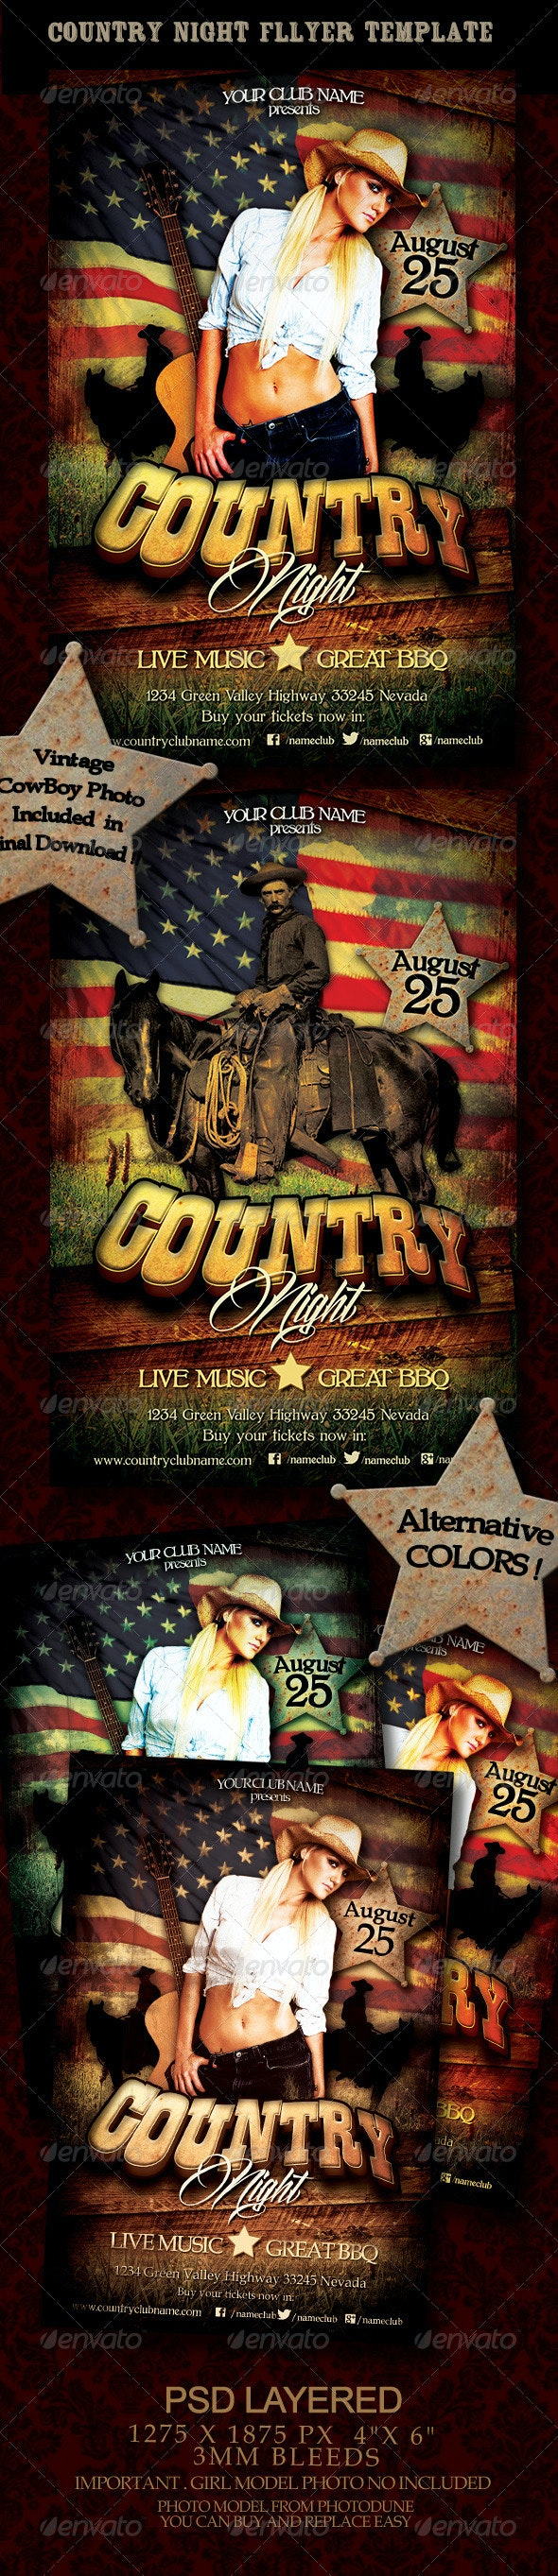 Country Night Flyer Template - Clubs & Parties Events